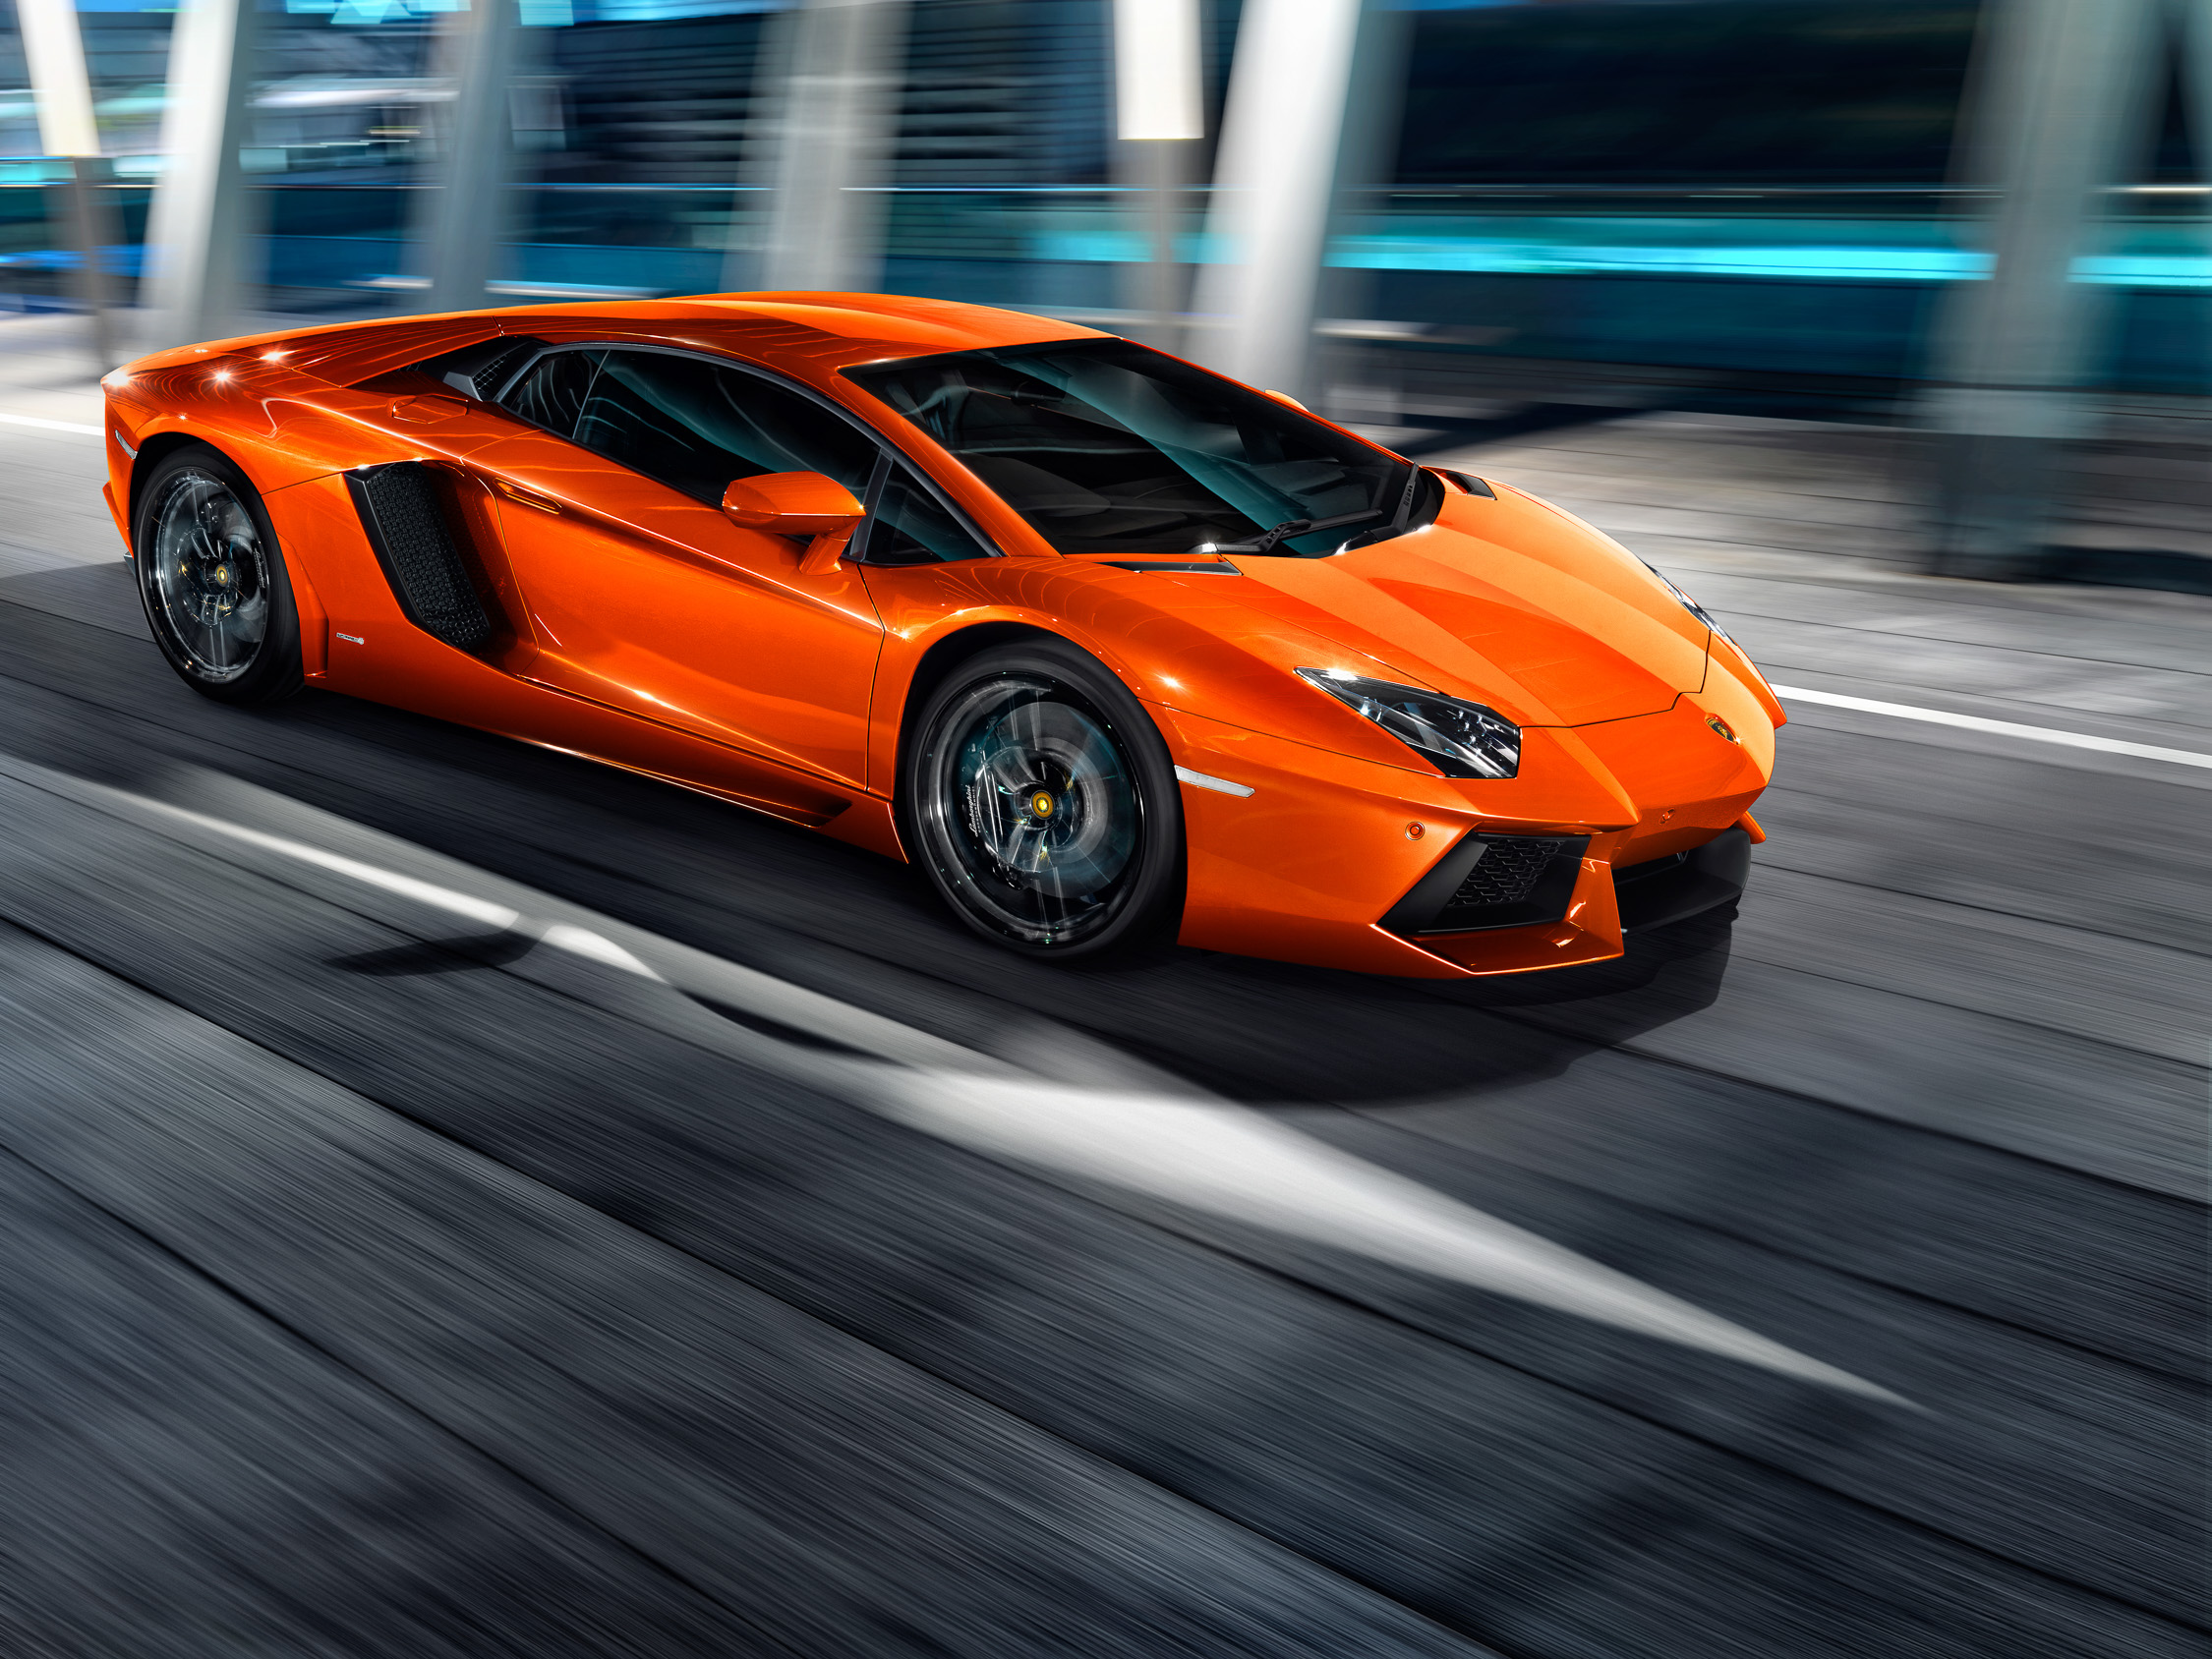 migs-foto-cgi-hong-kong-car-automotive-photography-photographer-Prestige-Aventador_0033_F_Rev-2K